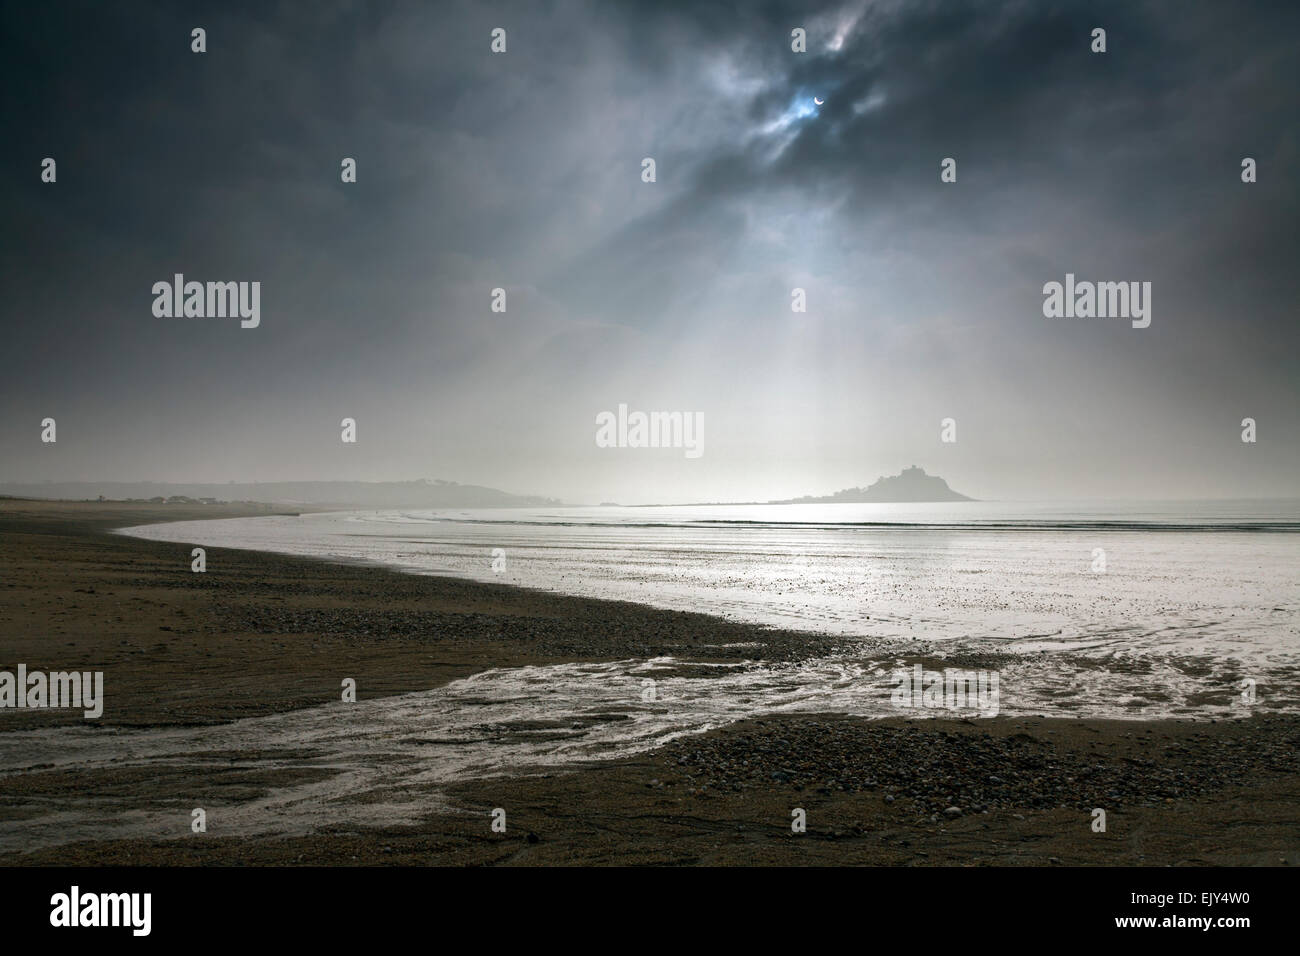 St Michael's Mount captured from Long Rock Beach during the partial eclipse in March 2015. - Stock Image